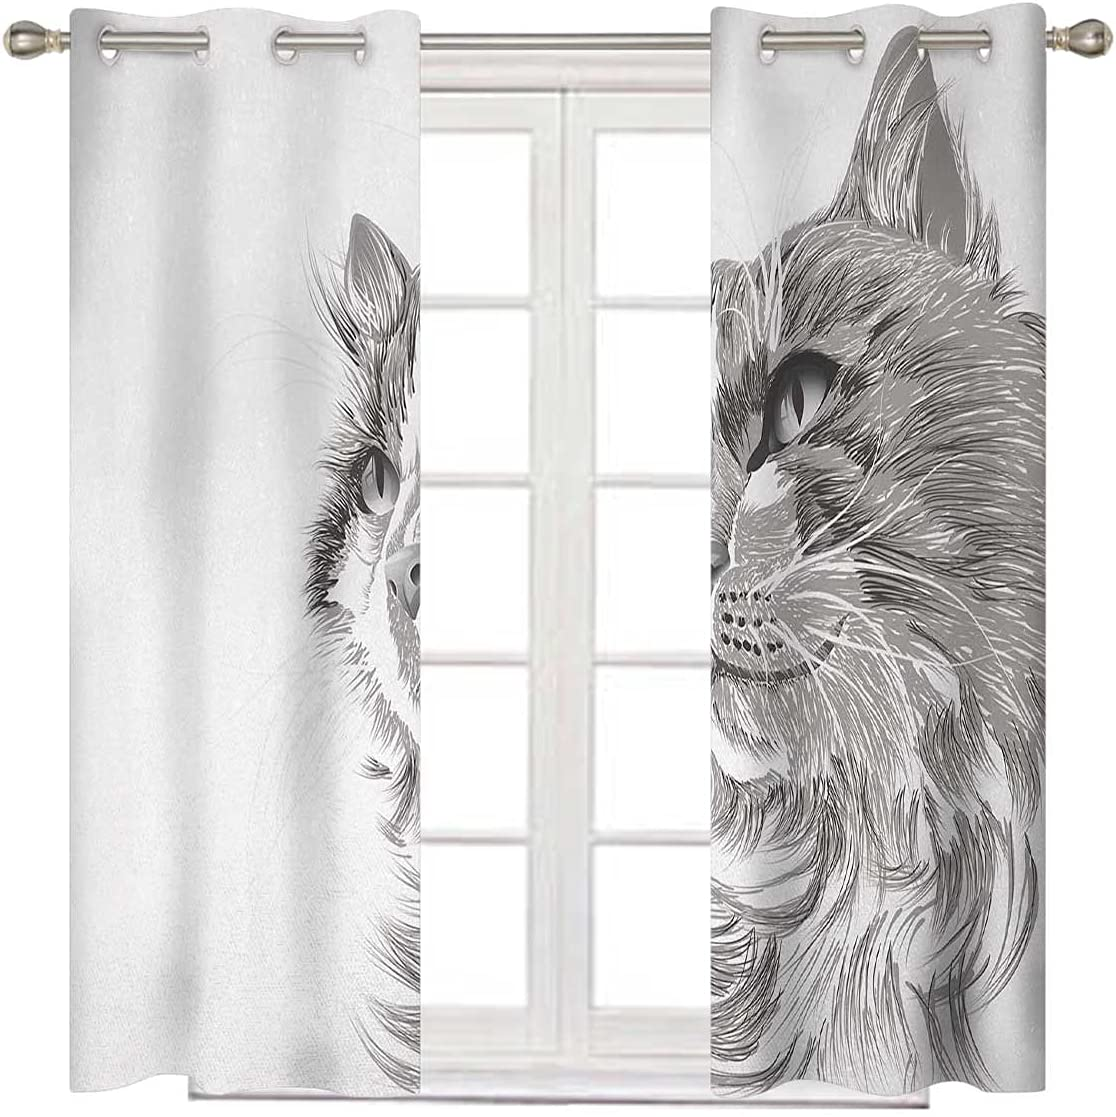 NEW Sales before selling Animal Bedroom Blackout Curtains 72 Blac Long Inches White Grey